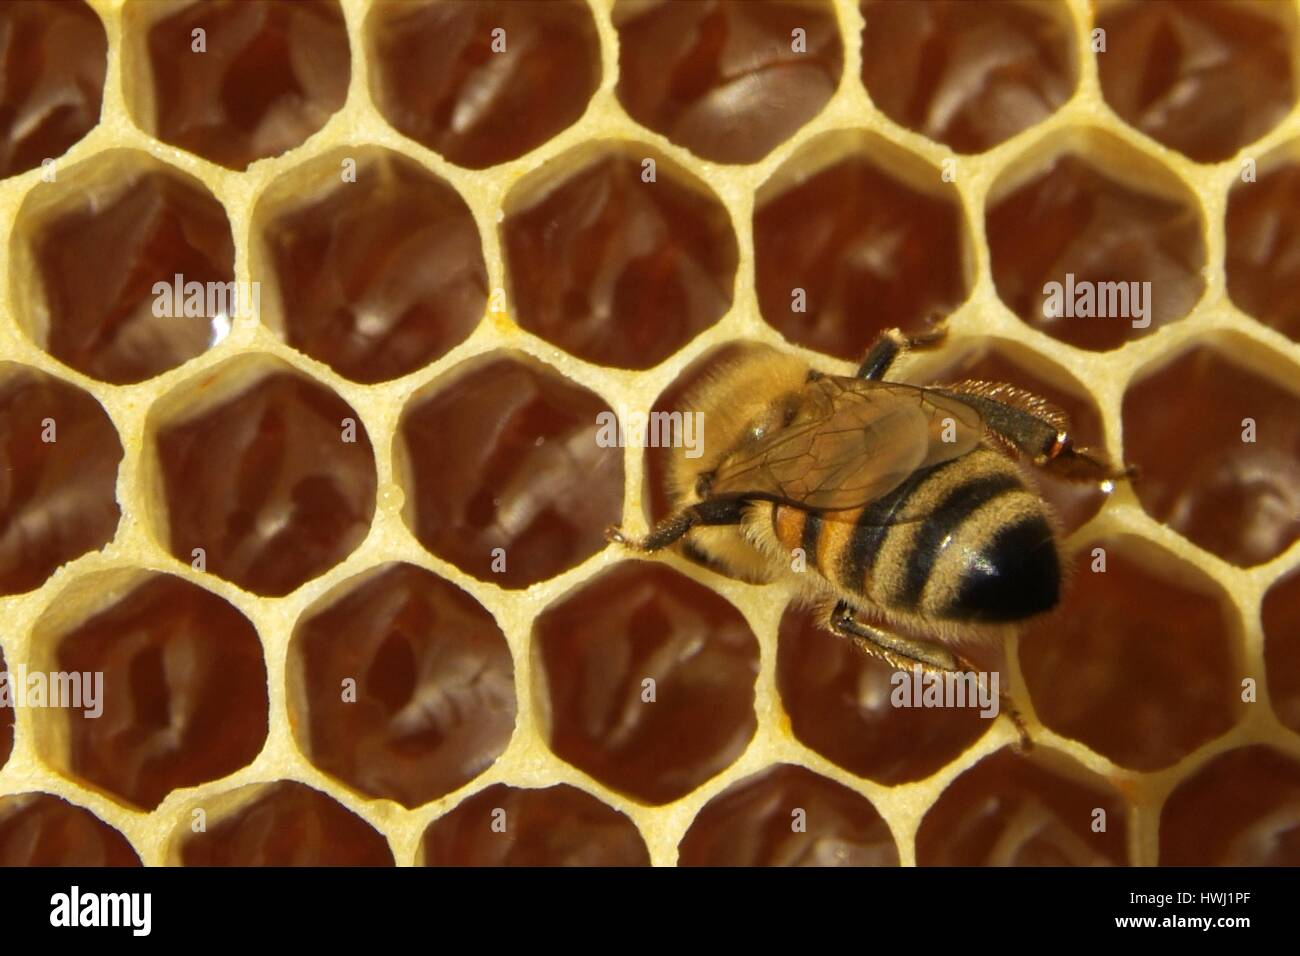 Bees in a beehive on honeycomb - Stock Image